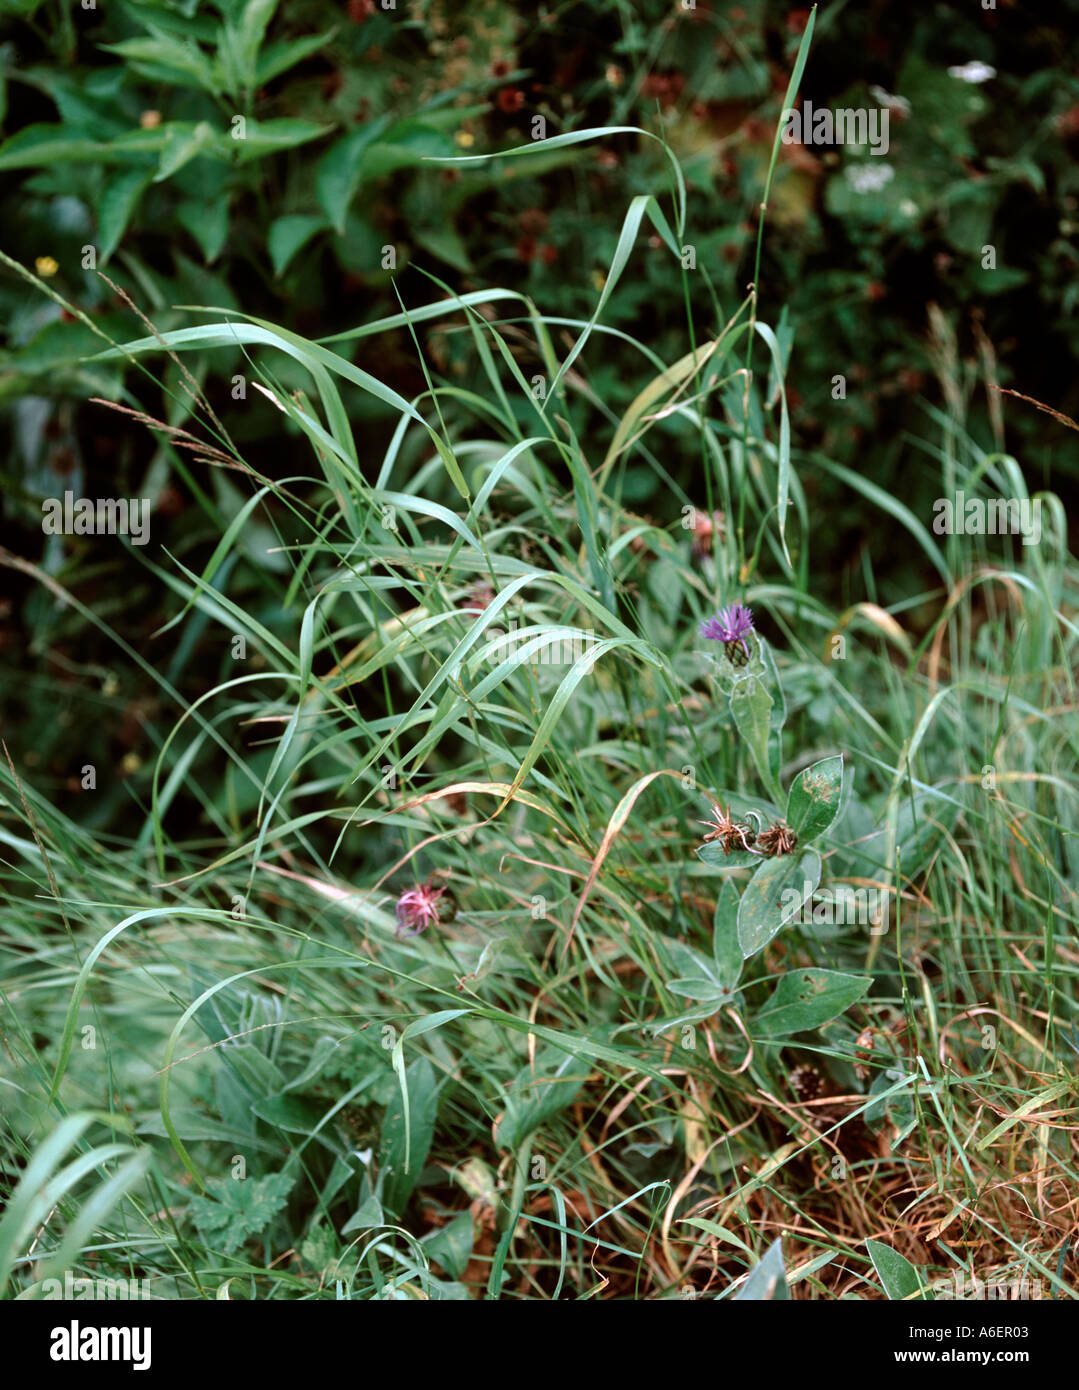 Grass Couch Couch Twitch Grass Agropyron In Stock Photos Couch Twitch Grass